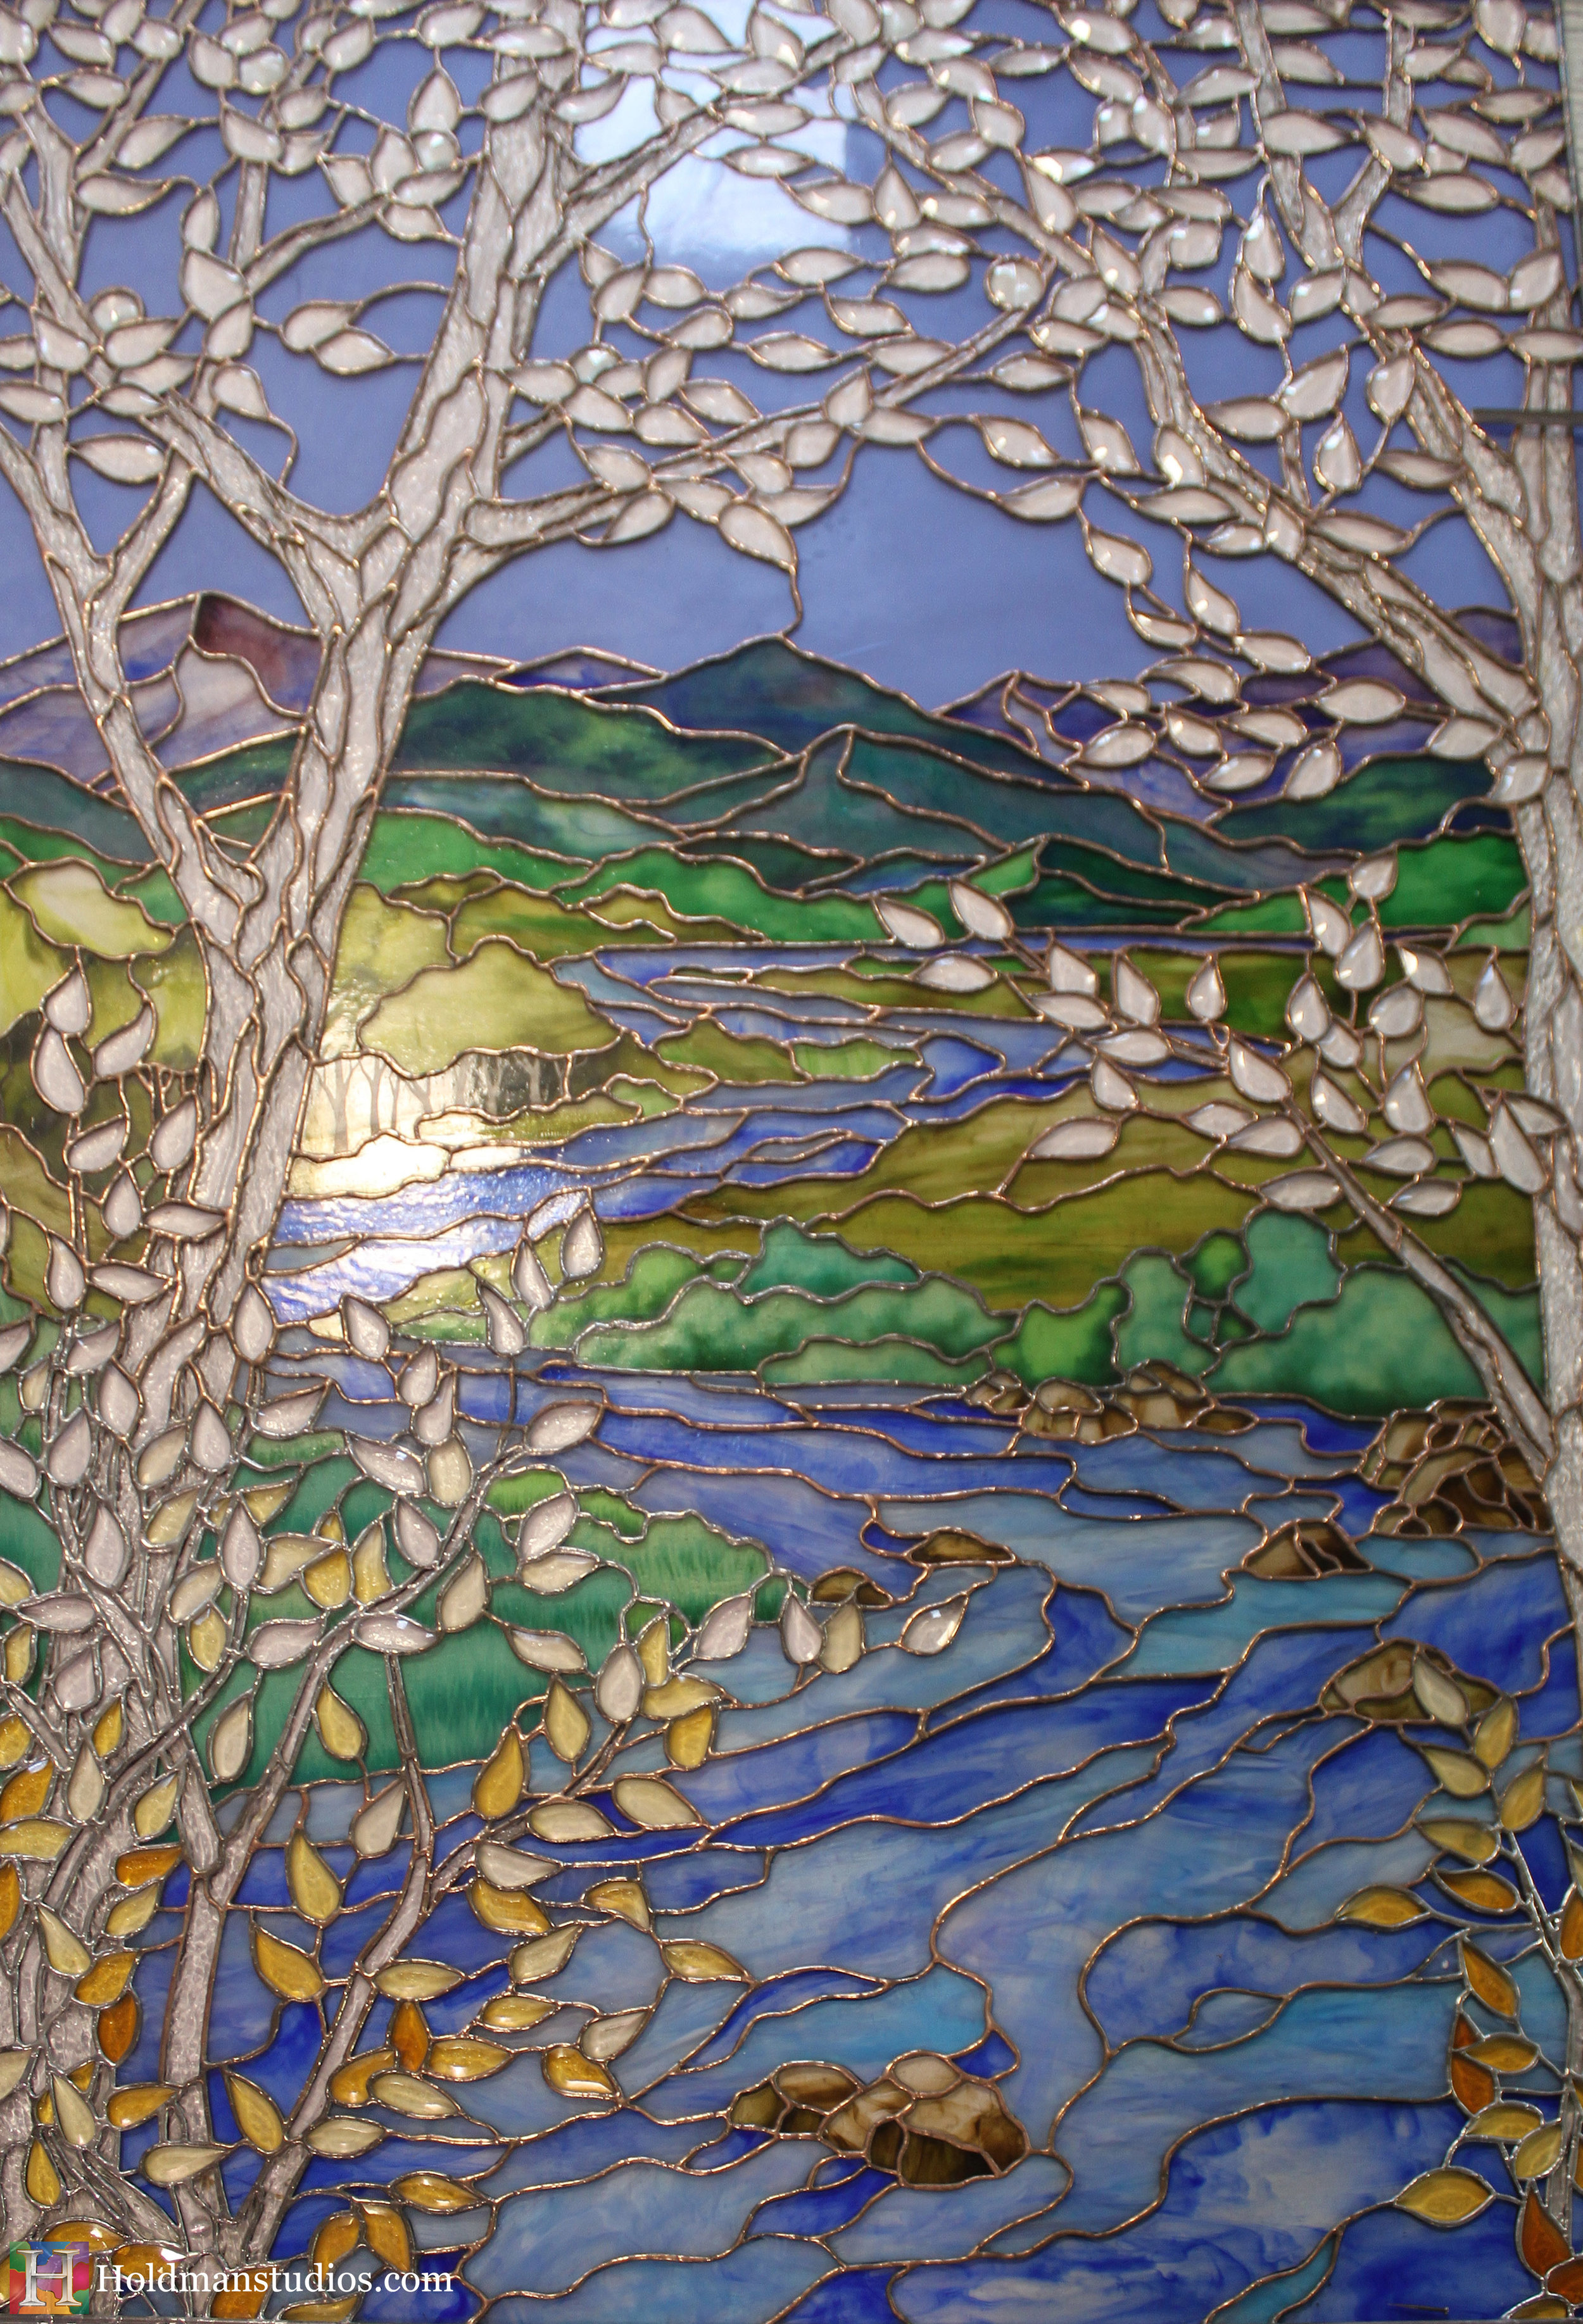 Holdman_Studios_Stained_Art_Glass_LDS_Mormon_Temple_Boise_Idaho_Lobby_Recommend_Desk_River_Stream_Mountain_Trees_Window_Closeup.jpg